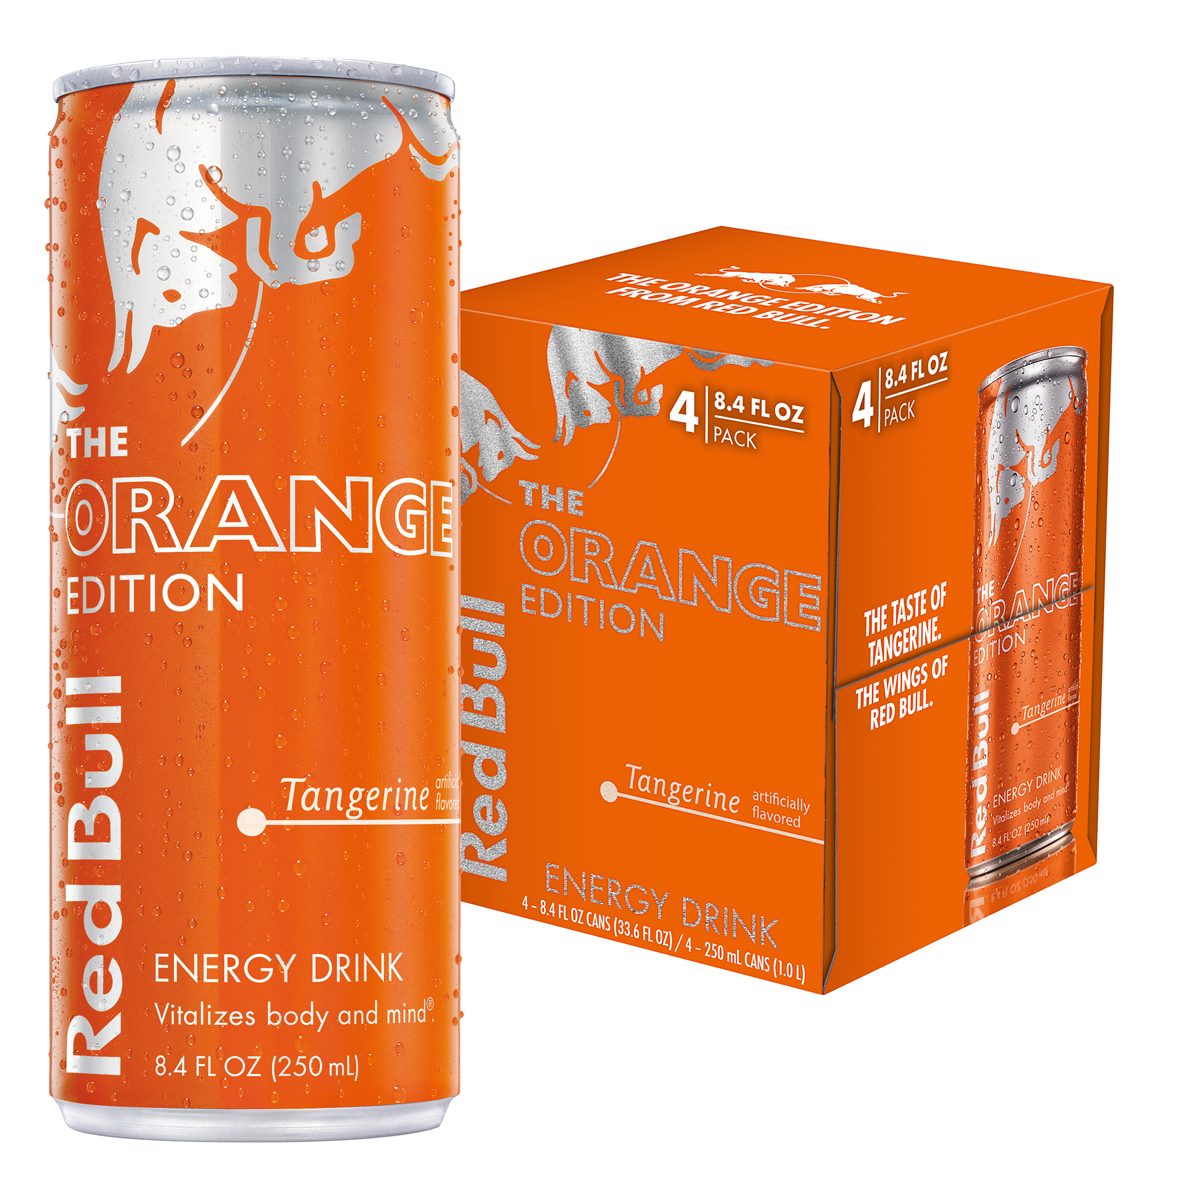 Red Bull The Orange Edition Energy Drink, Tangerine, 8.4 Fl Oz, 4 Count